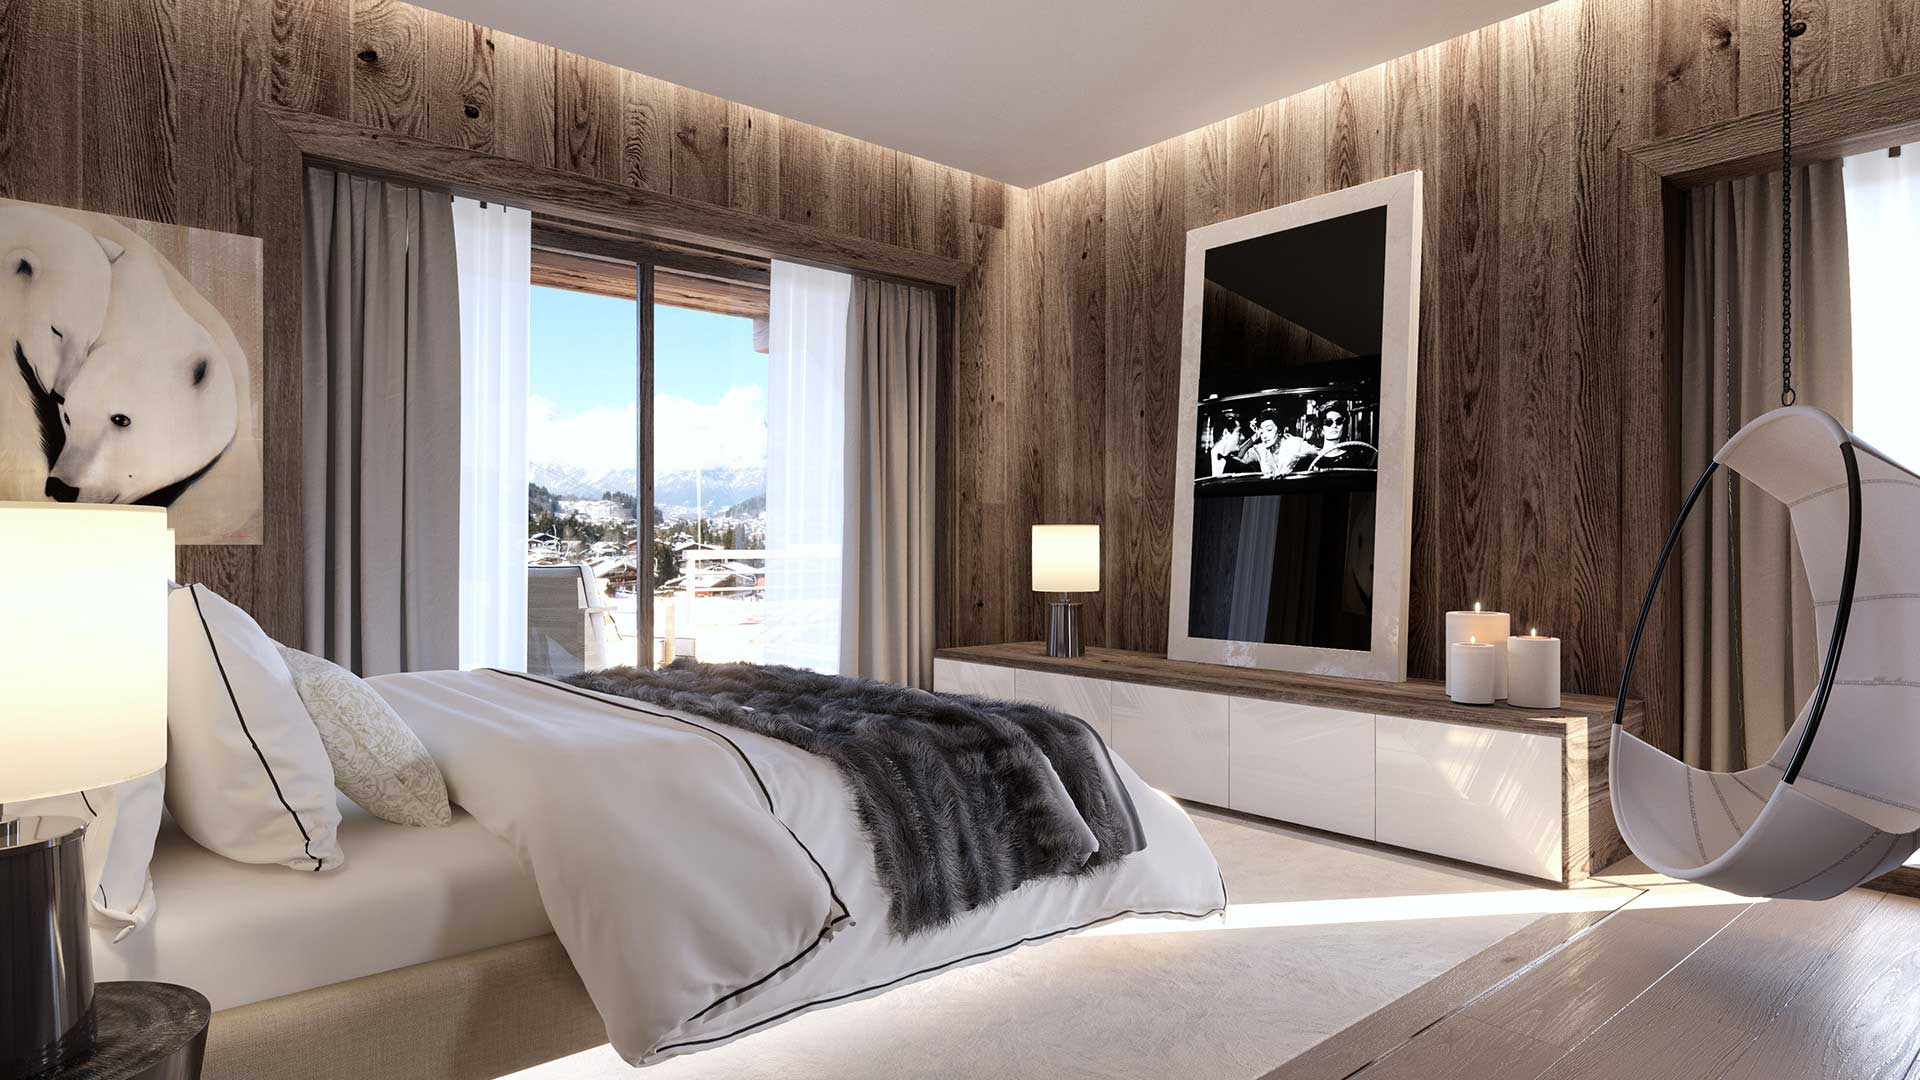 3D Perspective of a luxurious chalet, creation 3D images renderings.